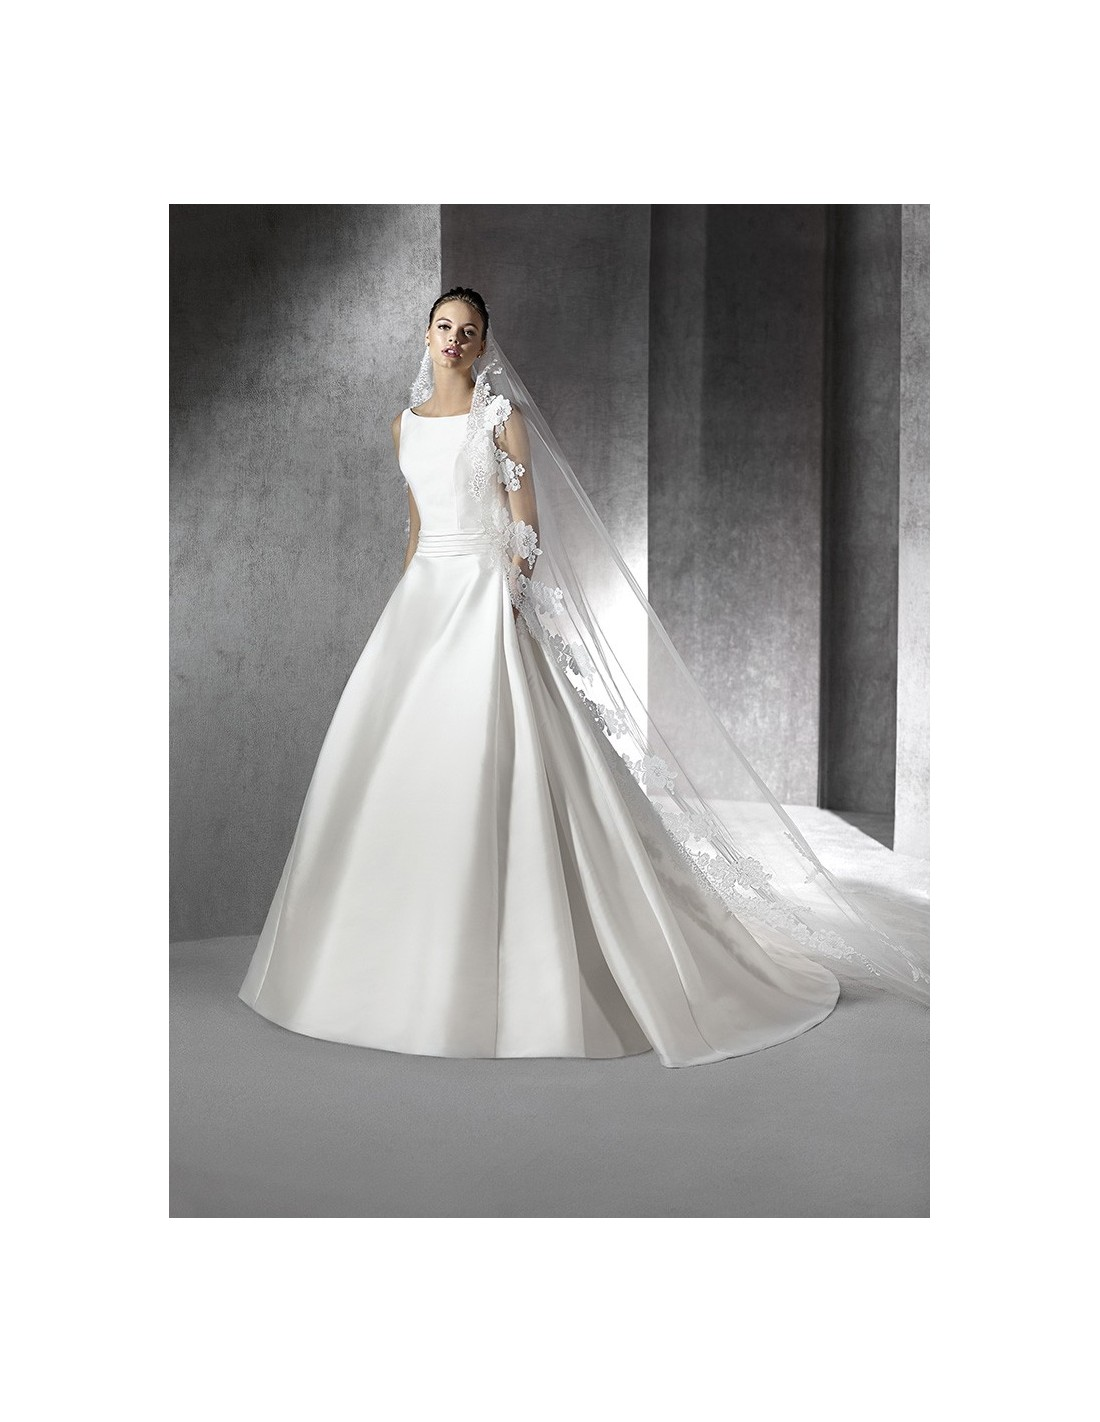 wedding dress zainesan patrick - sedka novias